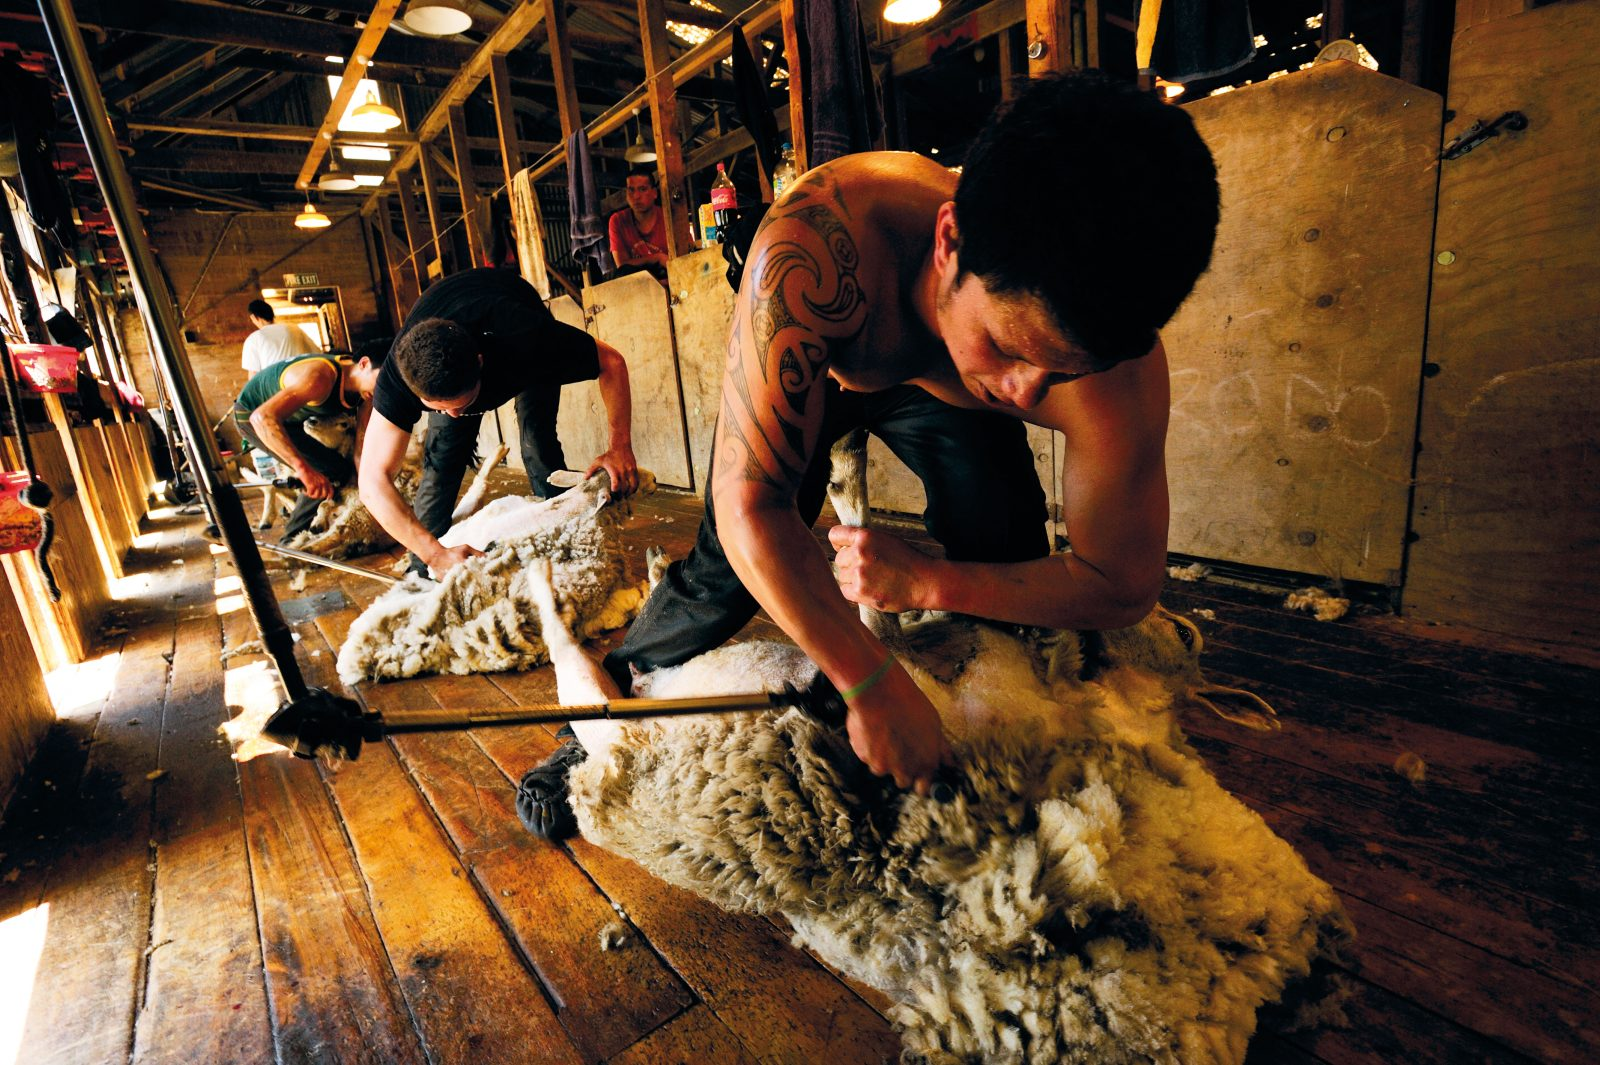 Handpieces flying, shearers in Brendan Mahoney's contracting gang work their way through the flock at Haupouri. Speed is of the essence for top shearers like Te Whata Thompson (foreground), who set their sights on winning an award at the prestigious Golden Shears contest. Success in competition pushes the pay rate up considerably. With sheep numbers declining, it is hard for shearers to find year-round work in New Zealand, so many travel overseas in the off season to work in Italy, France, the UK and Norway.